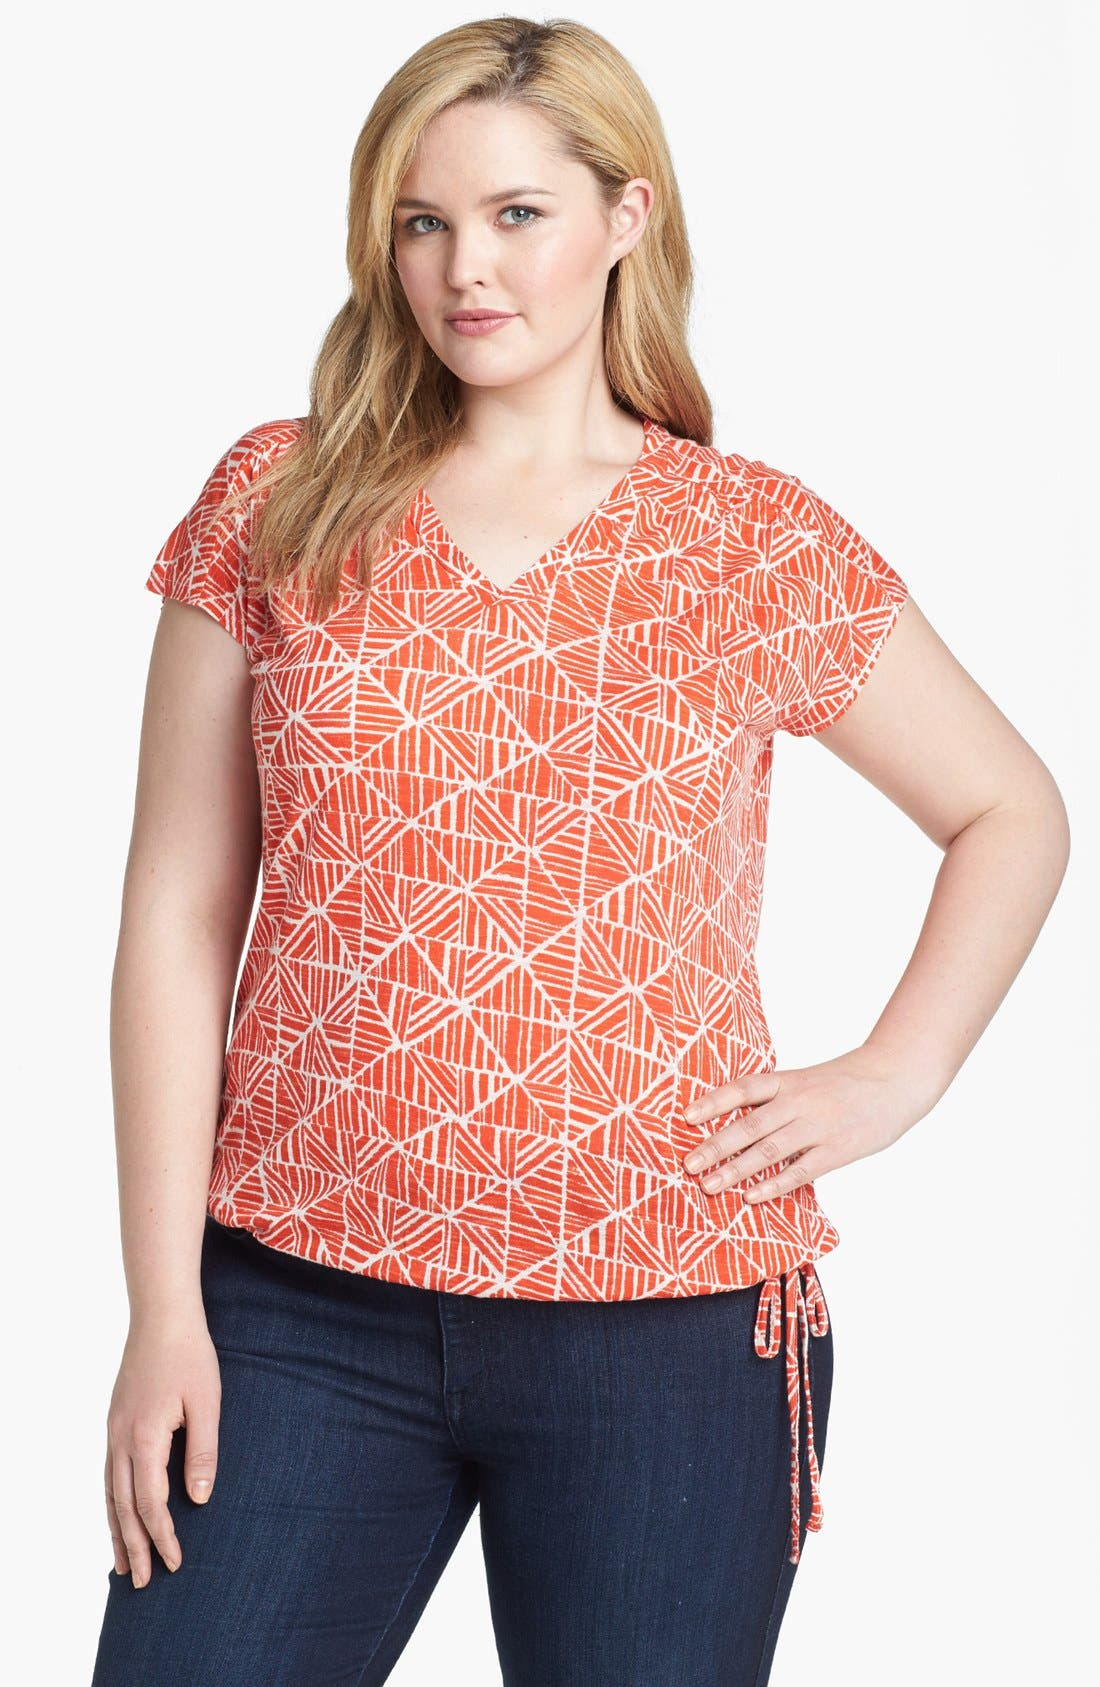 Main Image - Lucky Brand 'Mosaic Tile' Print Tee (Plus Size)